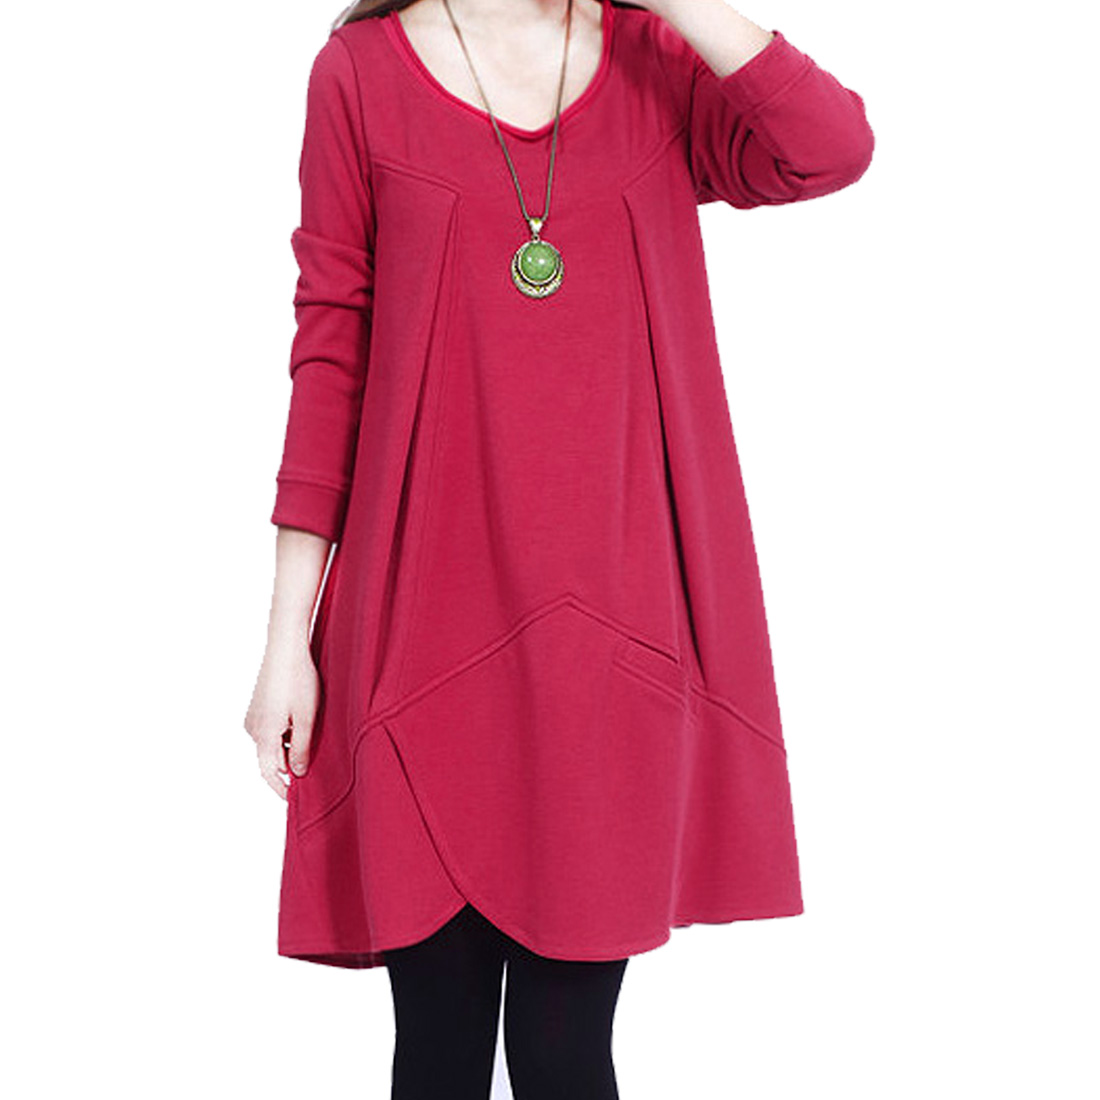 Women Scoop Neck Small Pocket Design Knitted Tunic Top Fuchsia S